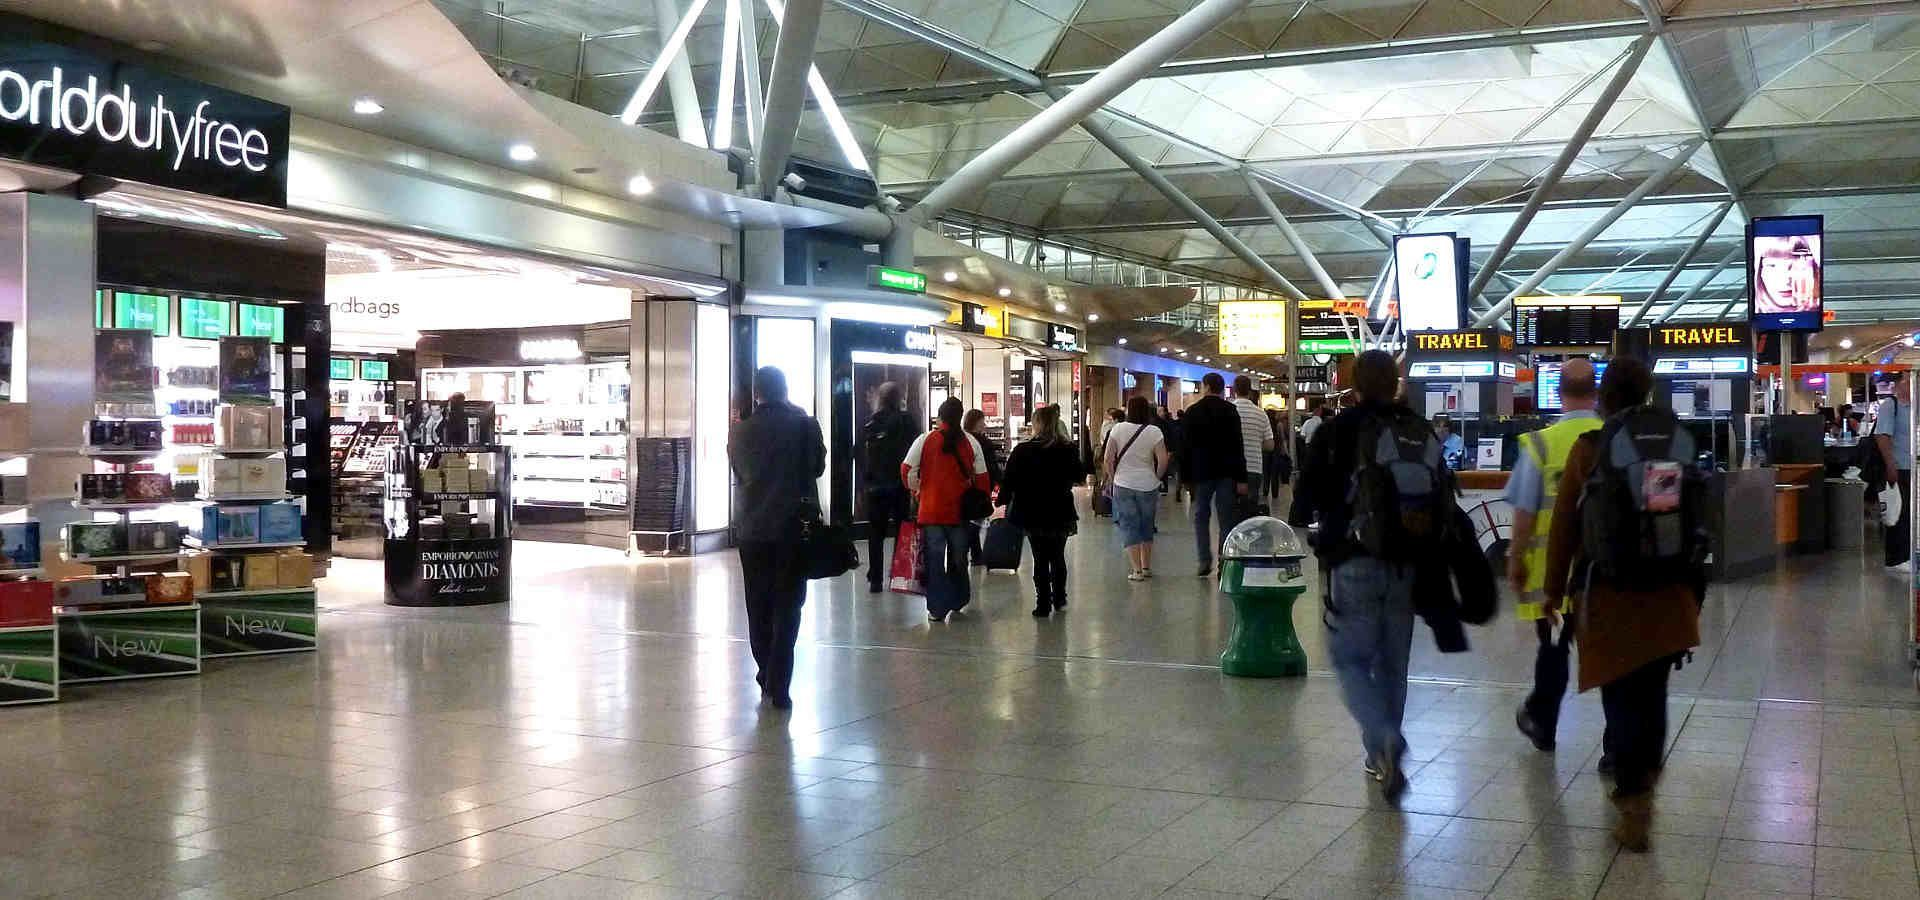 Getting From Gatwick Airport To London City Centre